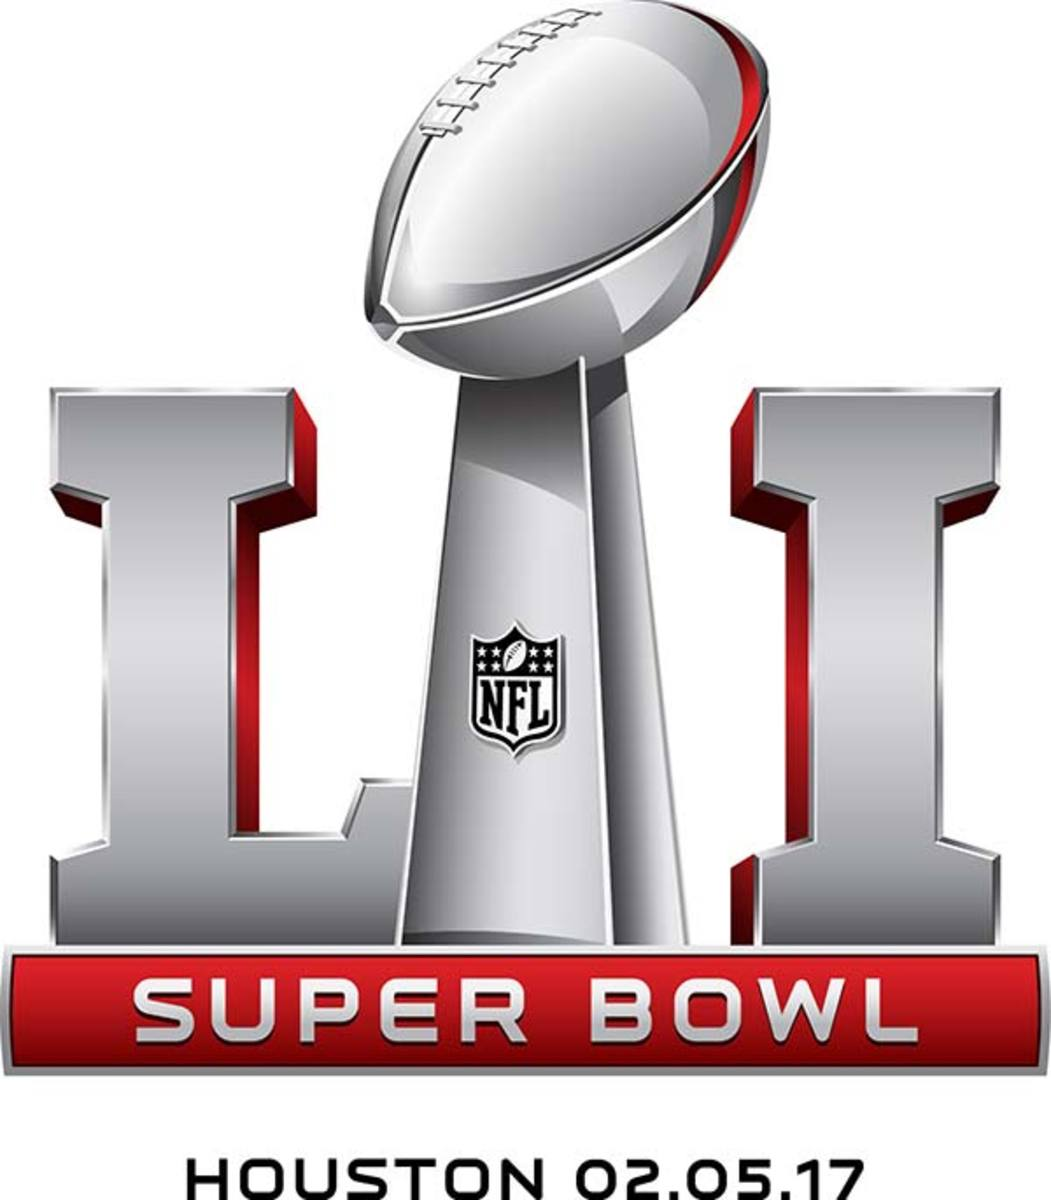 What time is the 2017 Super Bowl on?